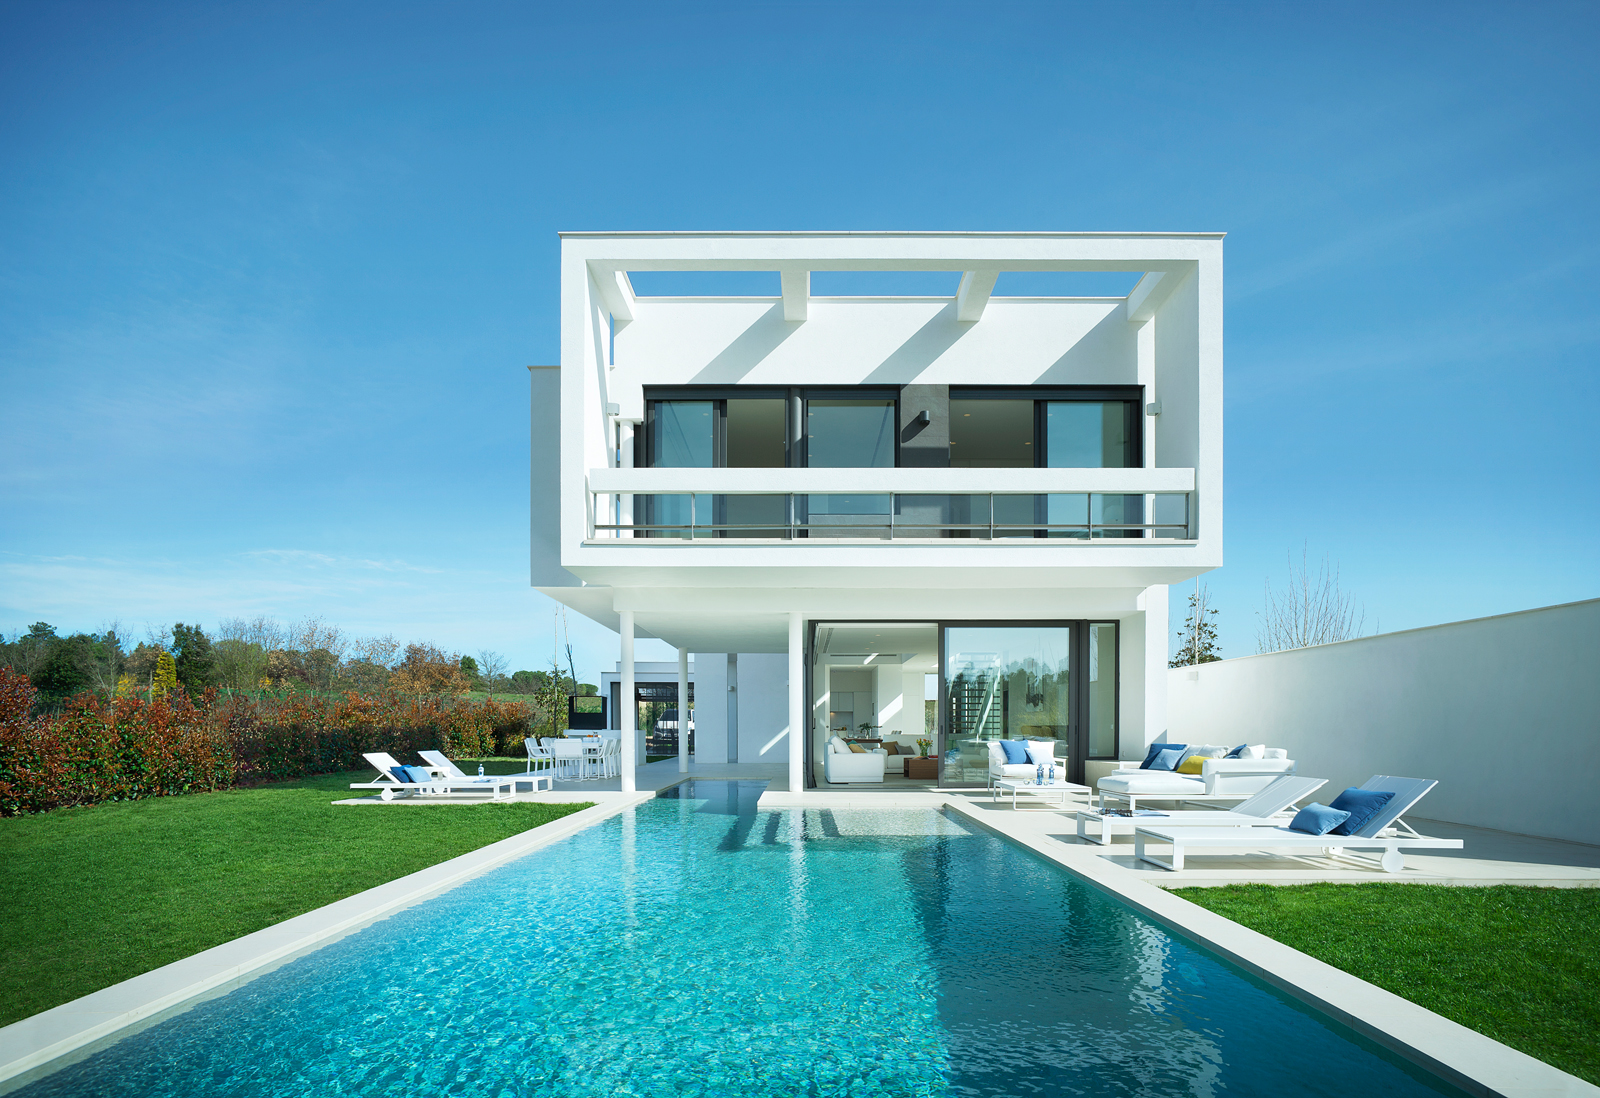 In spain and portugal golf resorts up their game with for Villa de luxe design